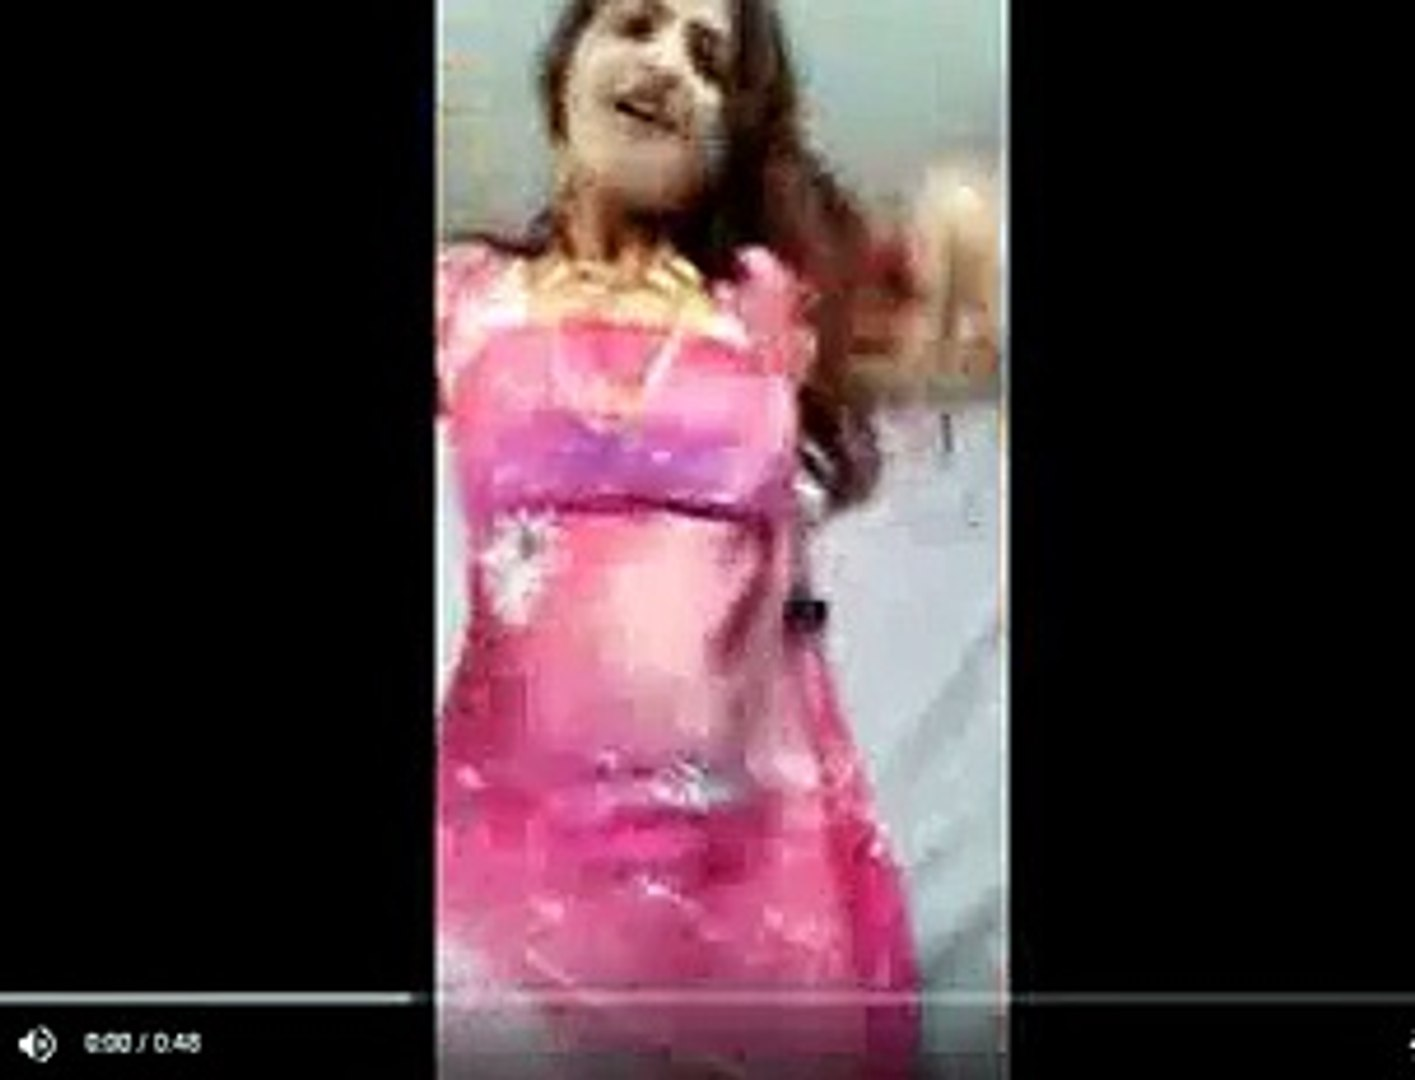 Sexy Bhabi On the dance Floor - Whatsapp funny videos